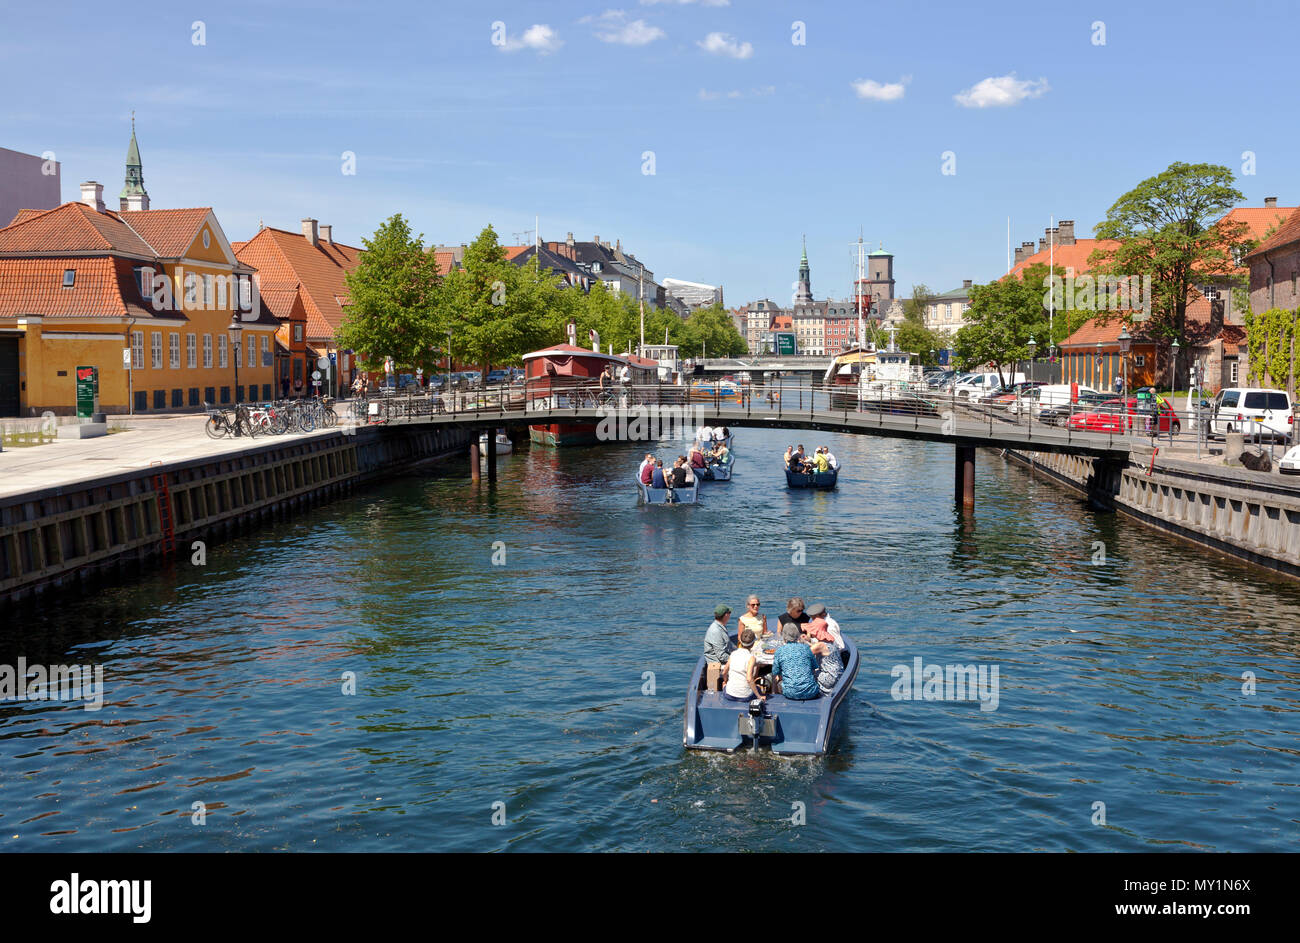 Electric Goboat picnic tour boats in the Frederiksholm Canal in Copenhagen, Denmark.Pedestrian bridge and the Prince's Bridge, Prinsens Bro. Stock Photo